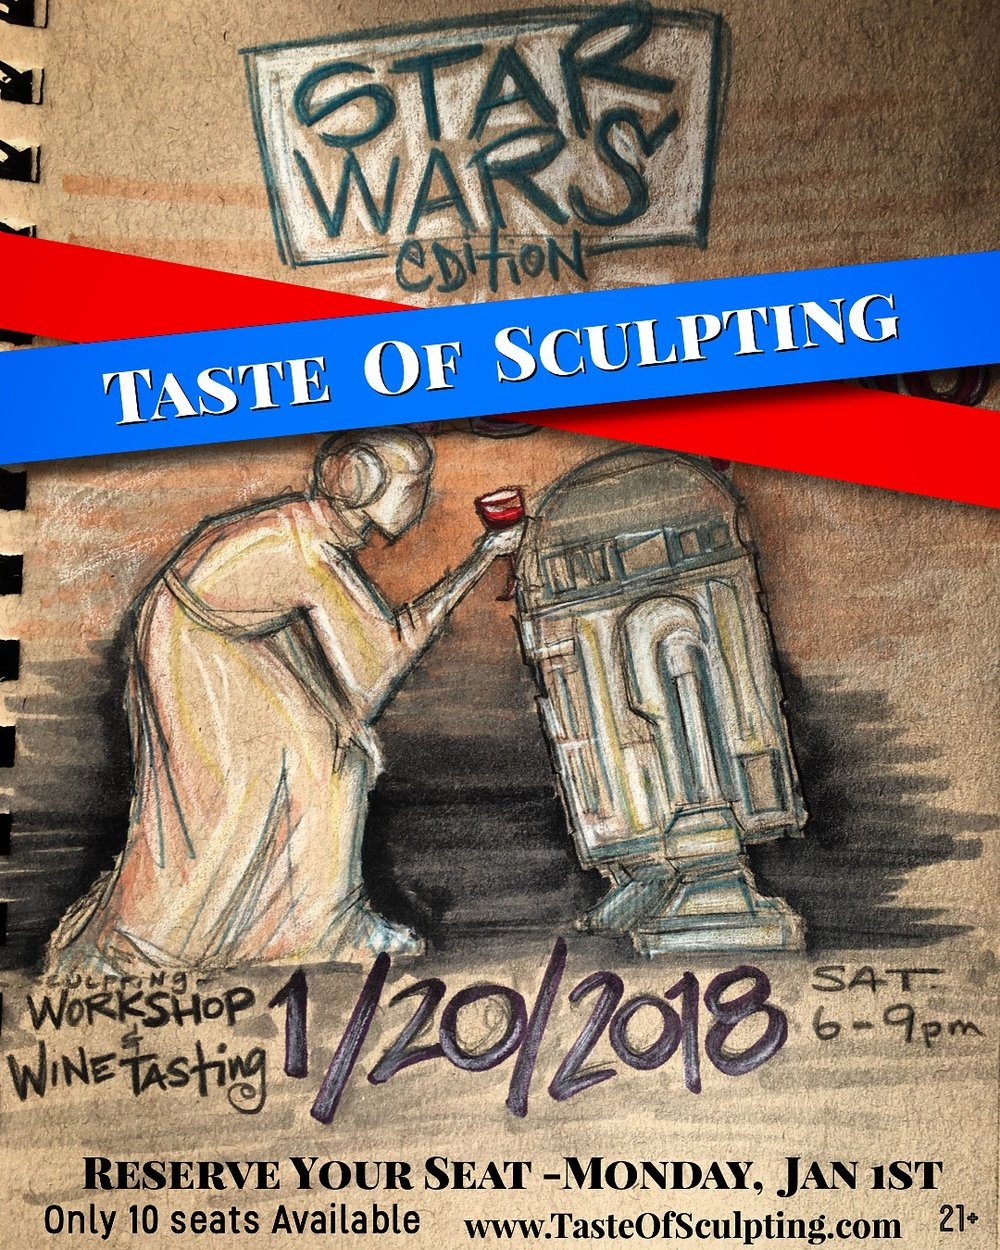 'Star Wars Edition' - 'Taste Of Sculpting' Workshop/ Wine Tasting           Saturday, January 20, 2018      6-9pmIt's your favorite movie. Why not learn to sculpt your favorite characters and drink some delicious wine.